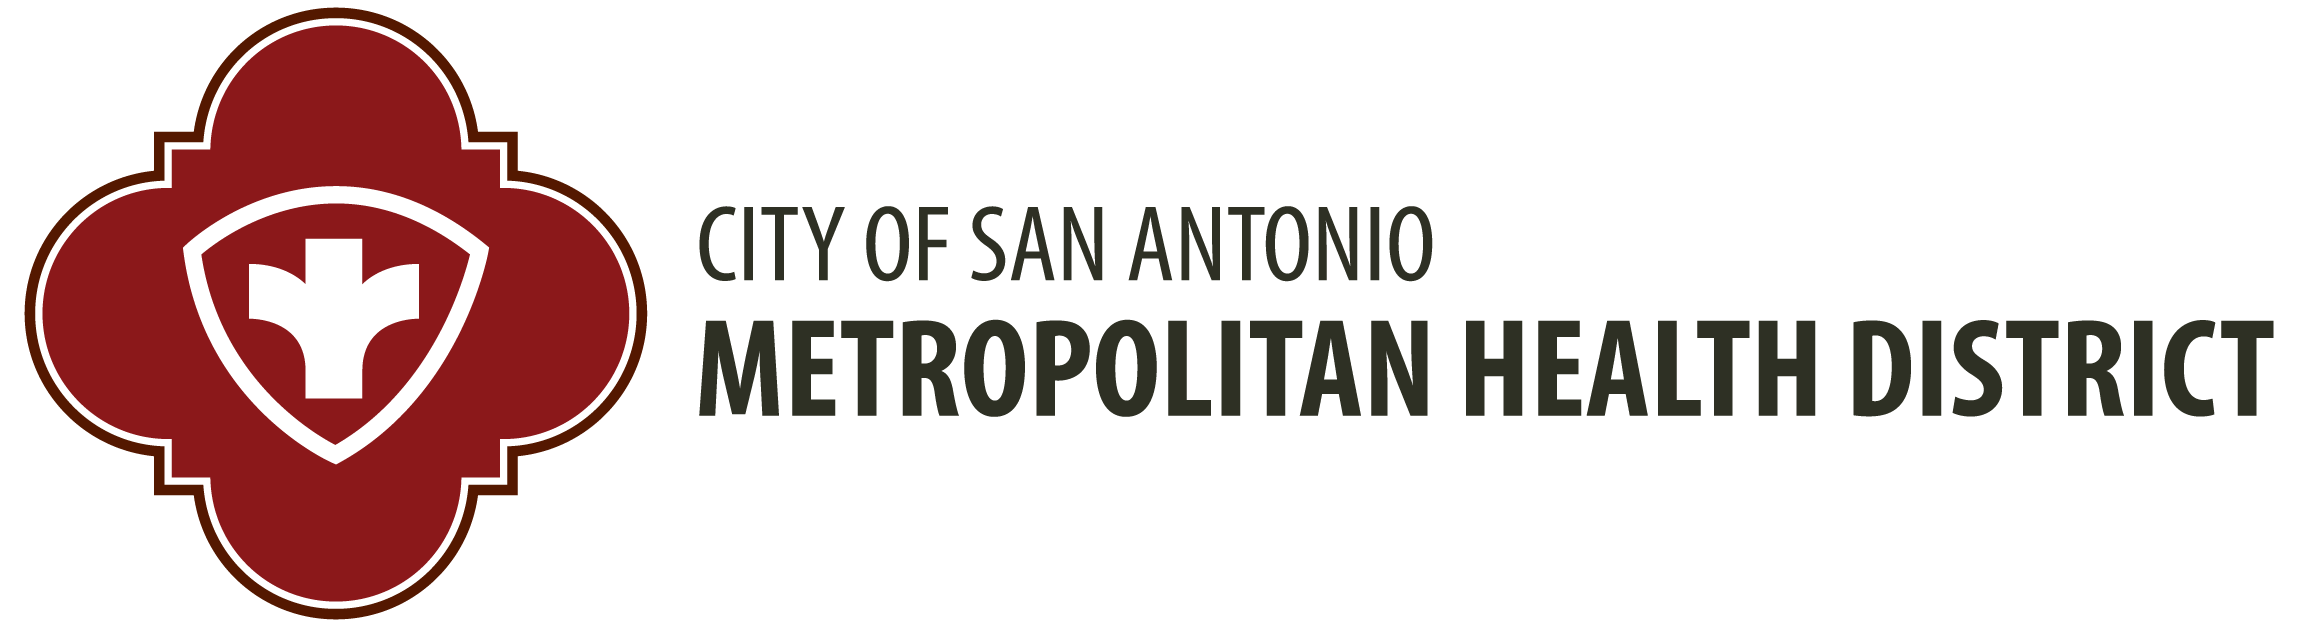 City of San Antonio Metropolitan Health District logo